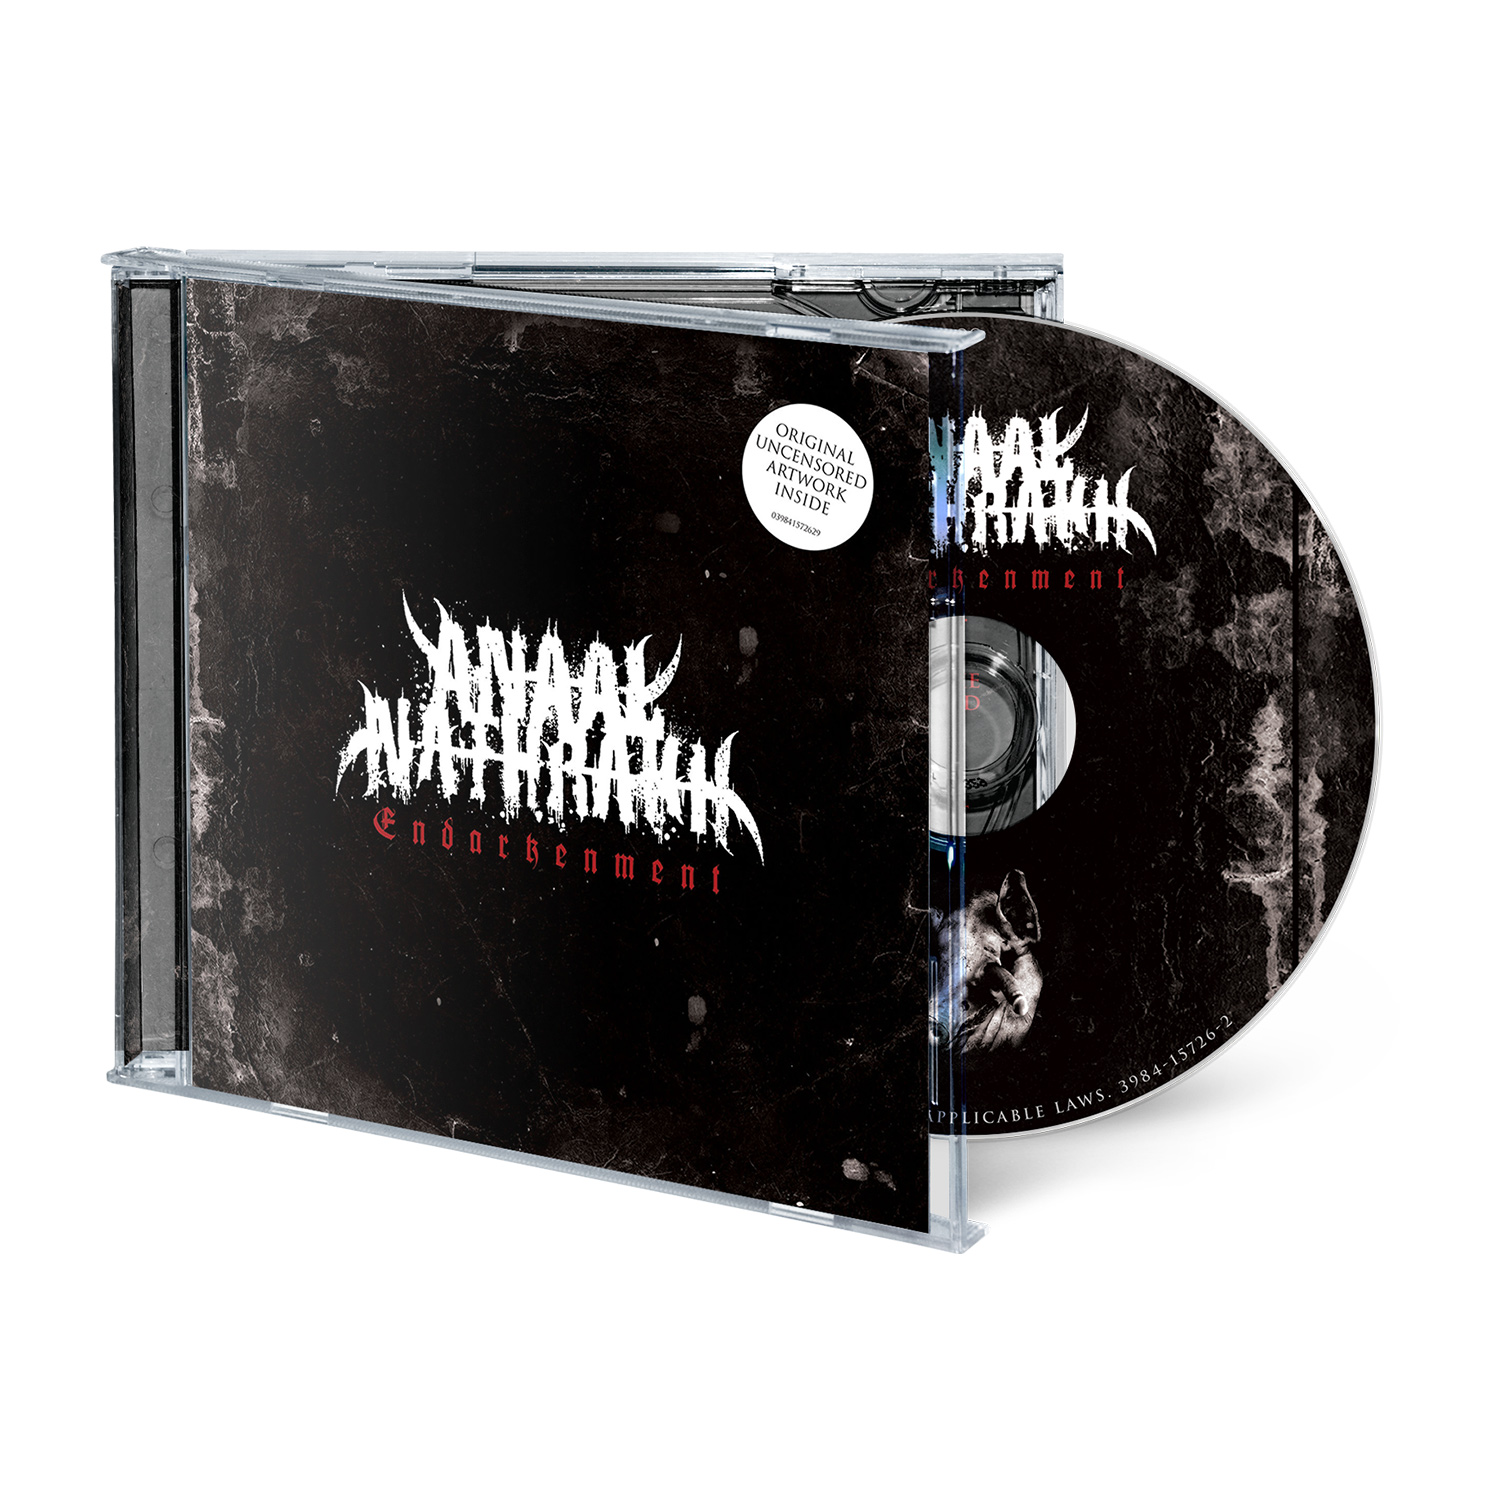 Endarkenment - CD Bundle